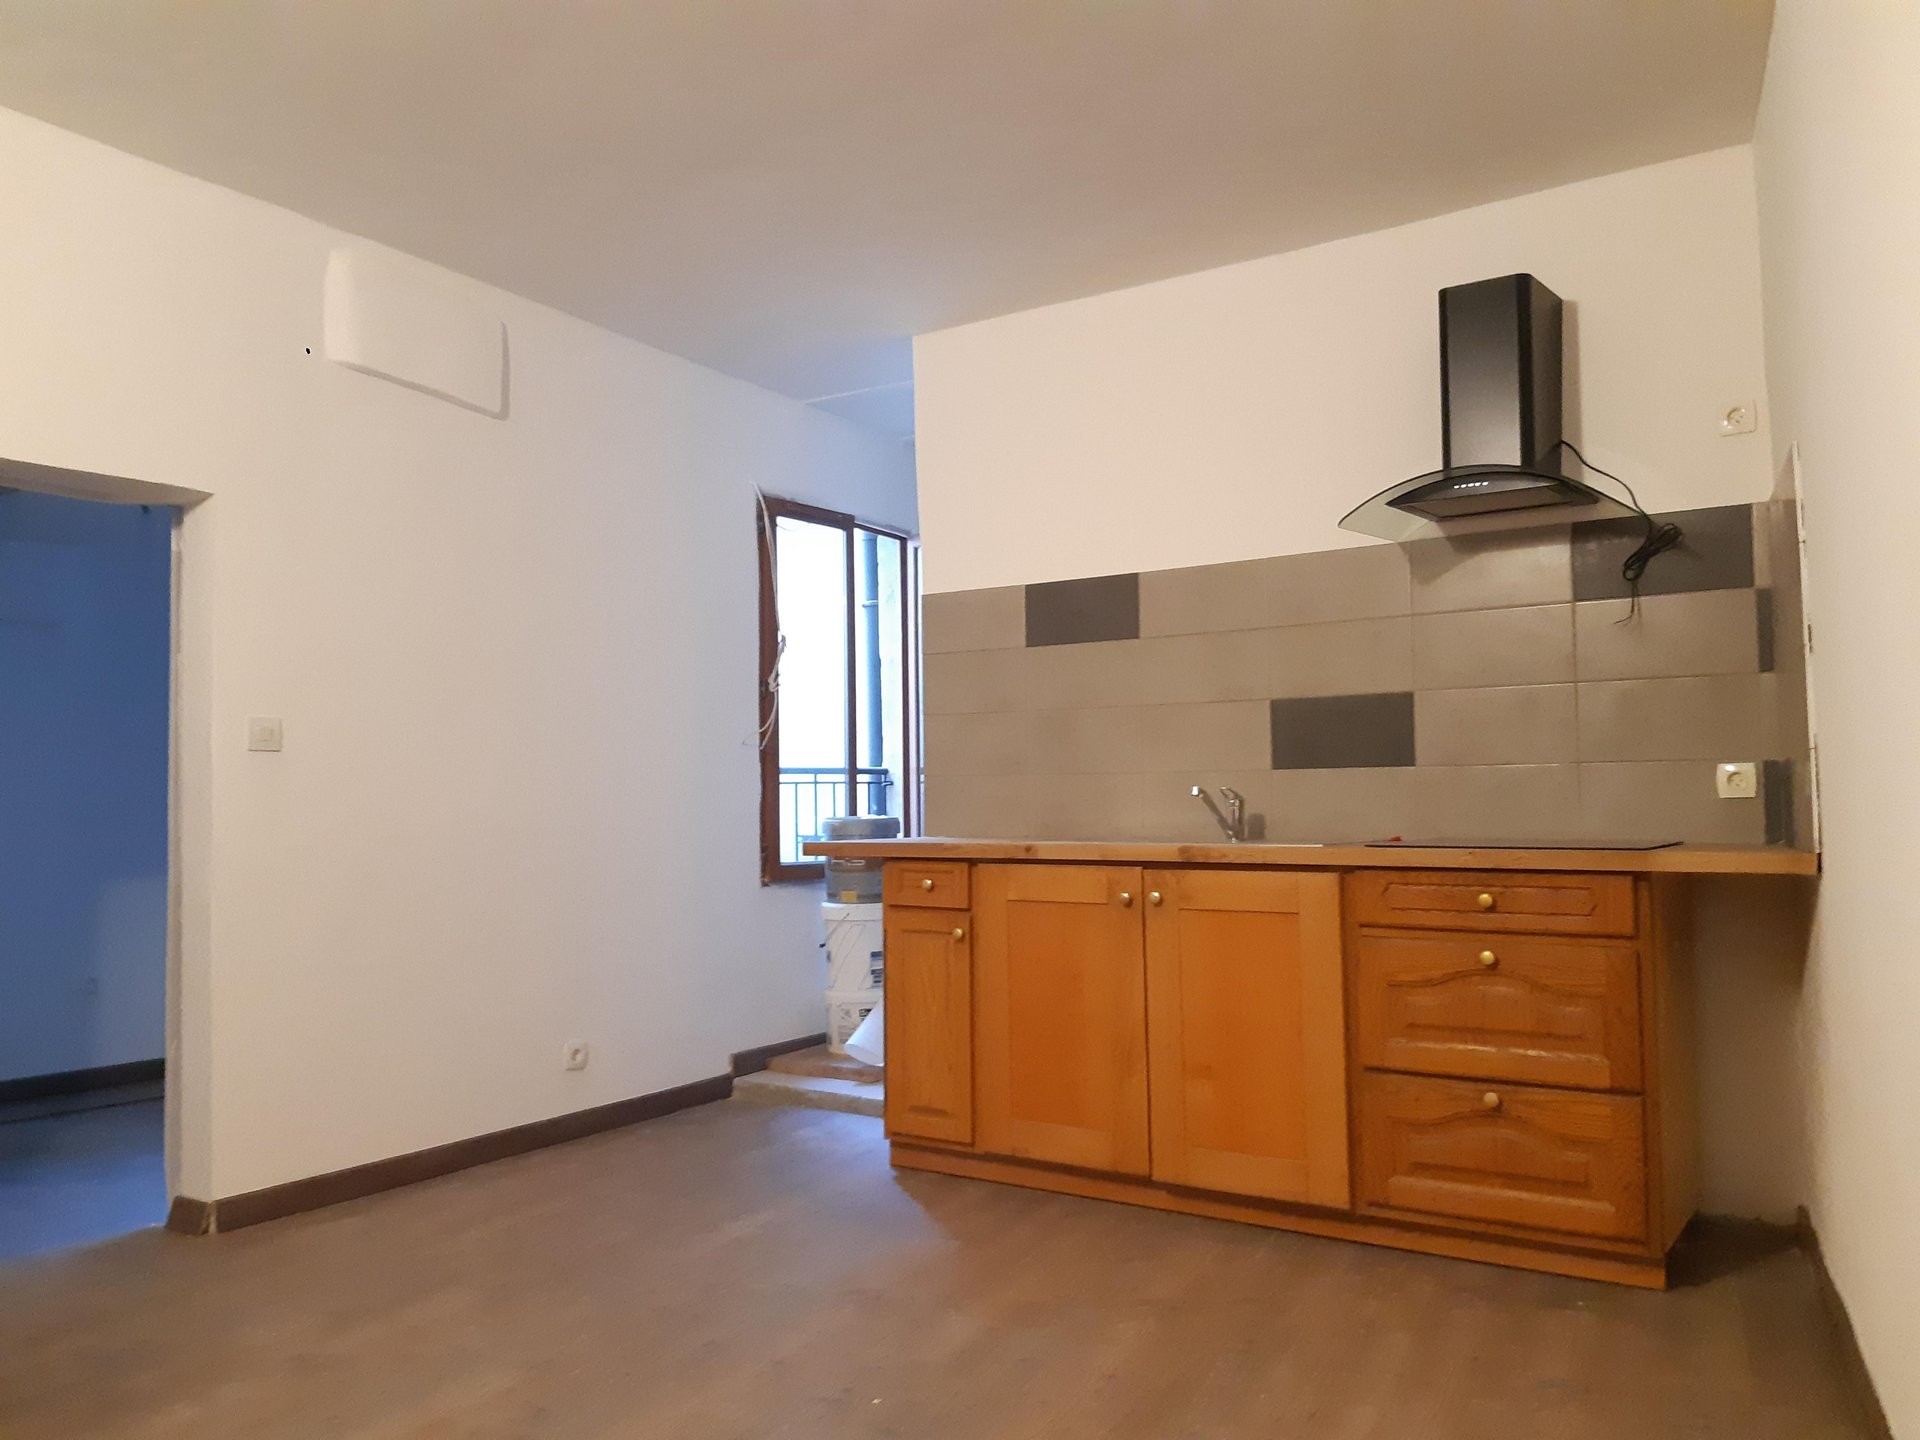 Location Appartement TARASCON Mandat :